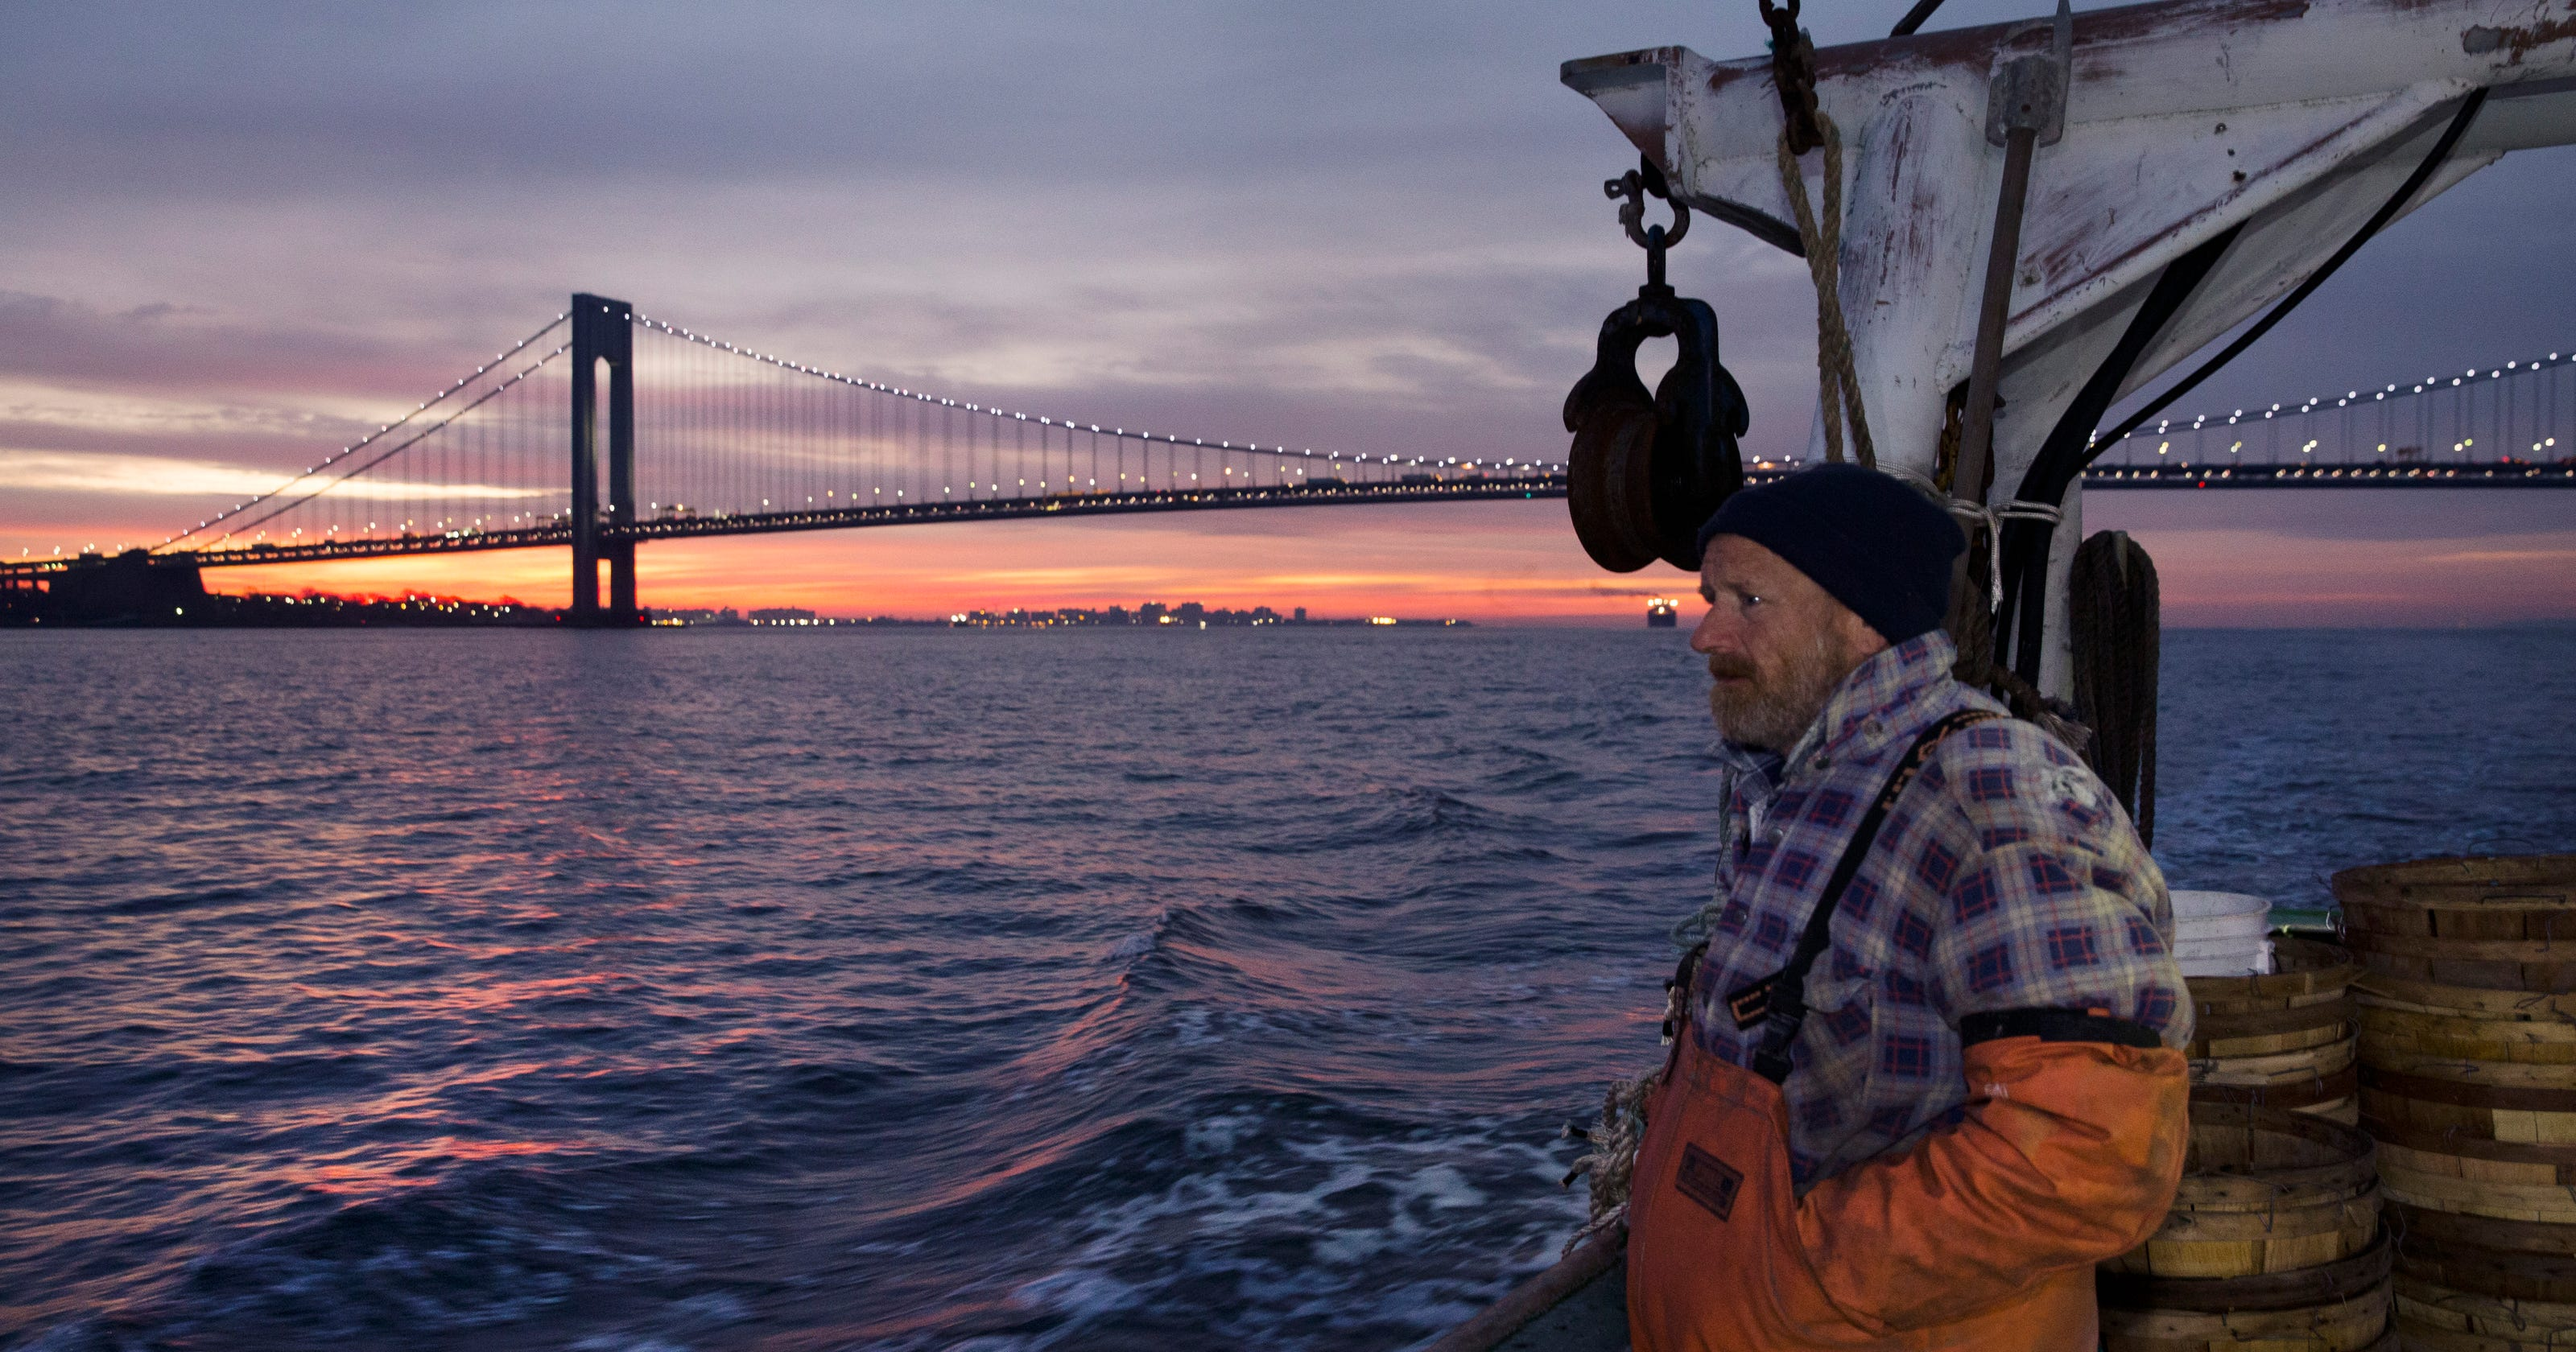 Middletown blue crab harvest: Early hours, difficult haul